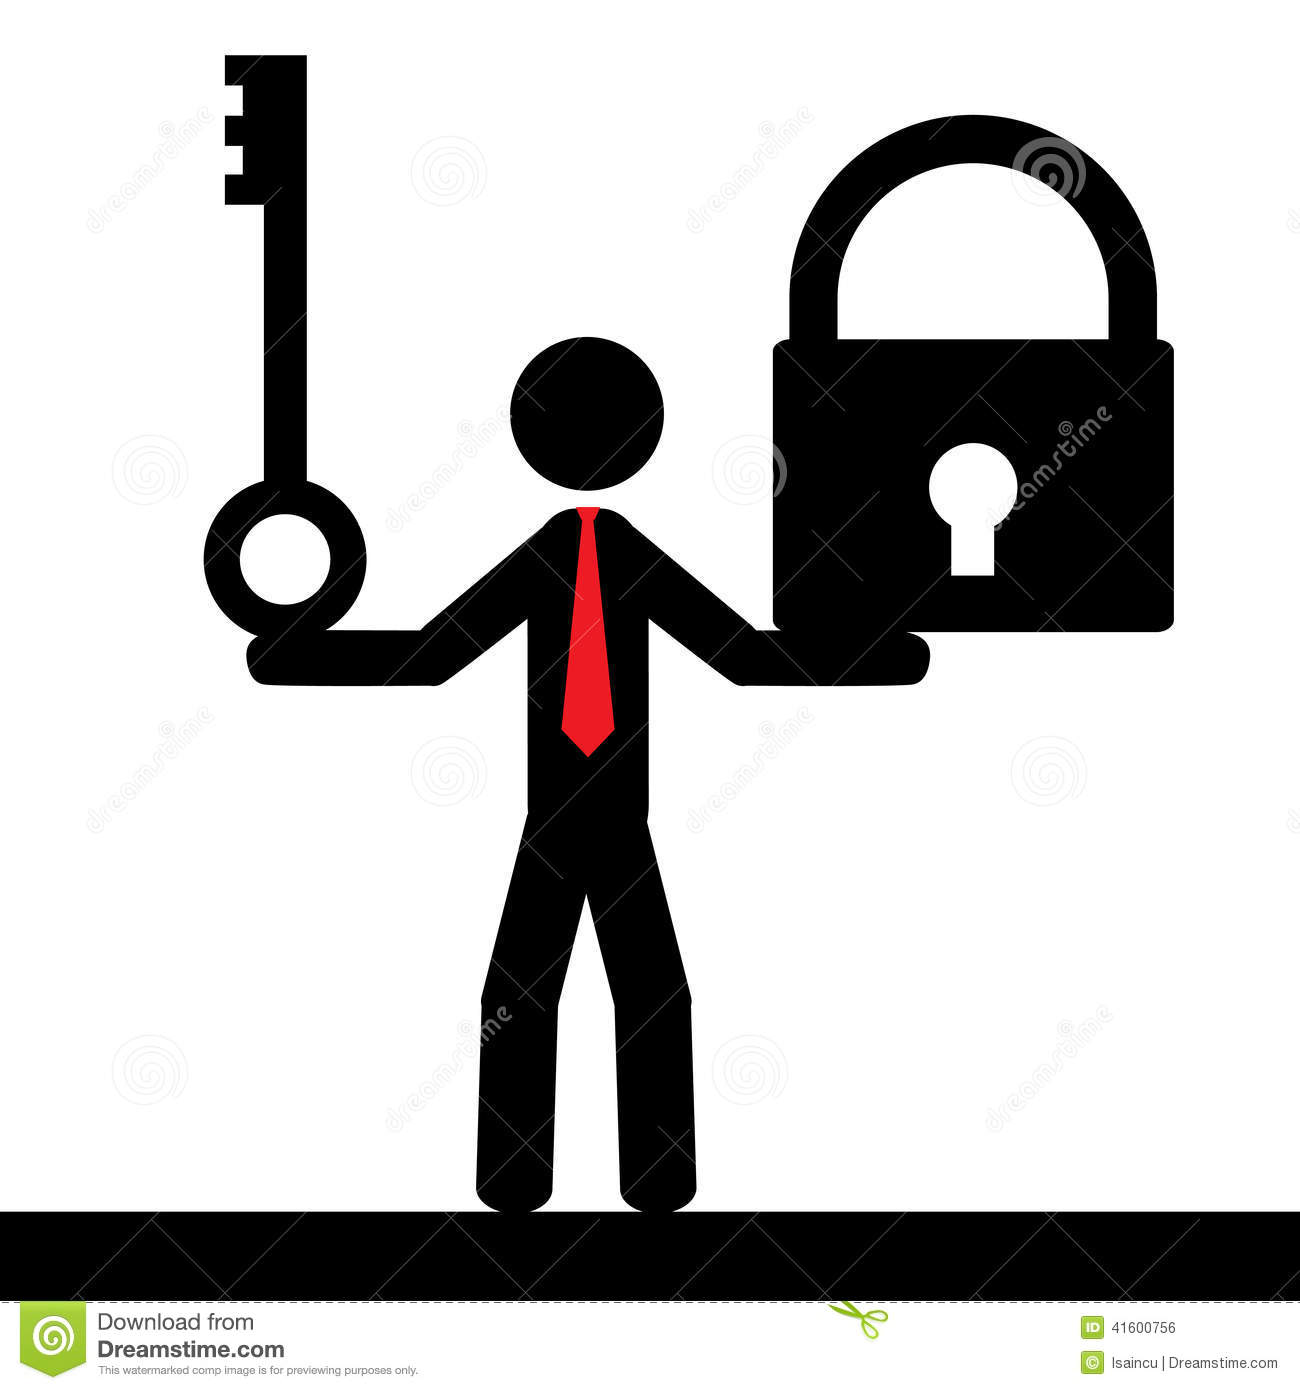 Vector Key Illustration: Man With Lock And Key Stock Vector. Image Of Abstract